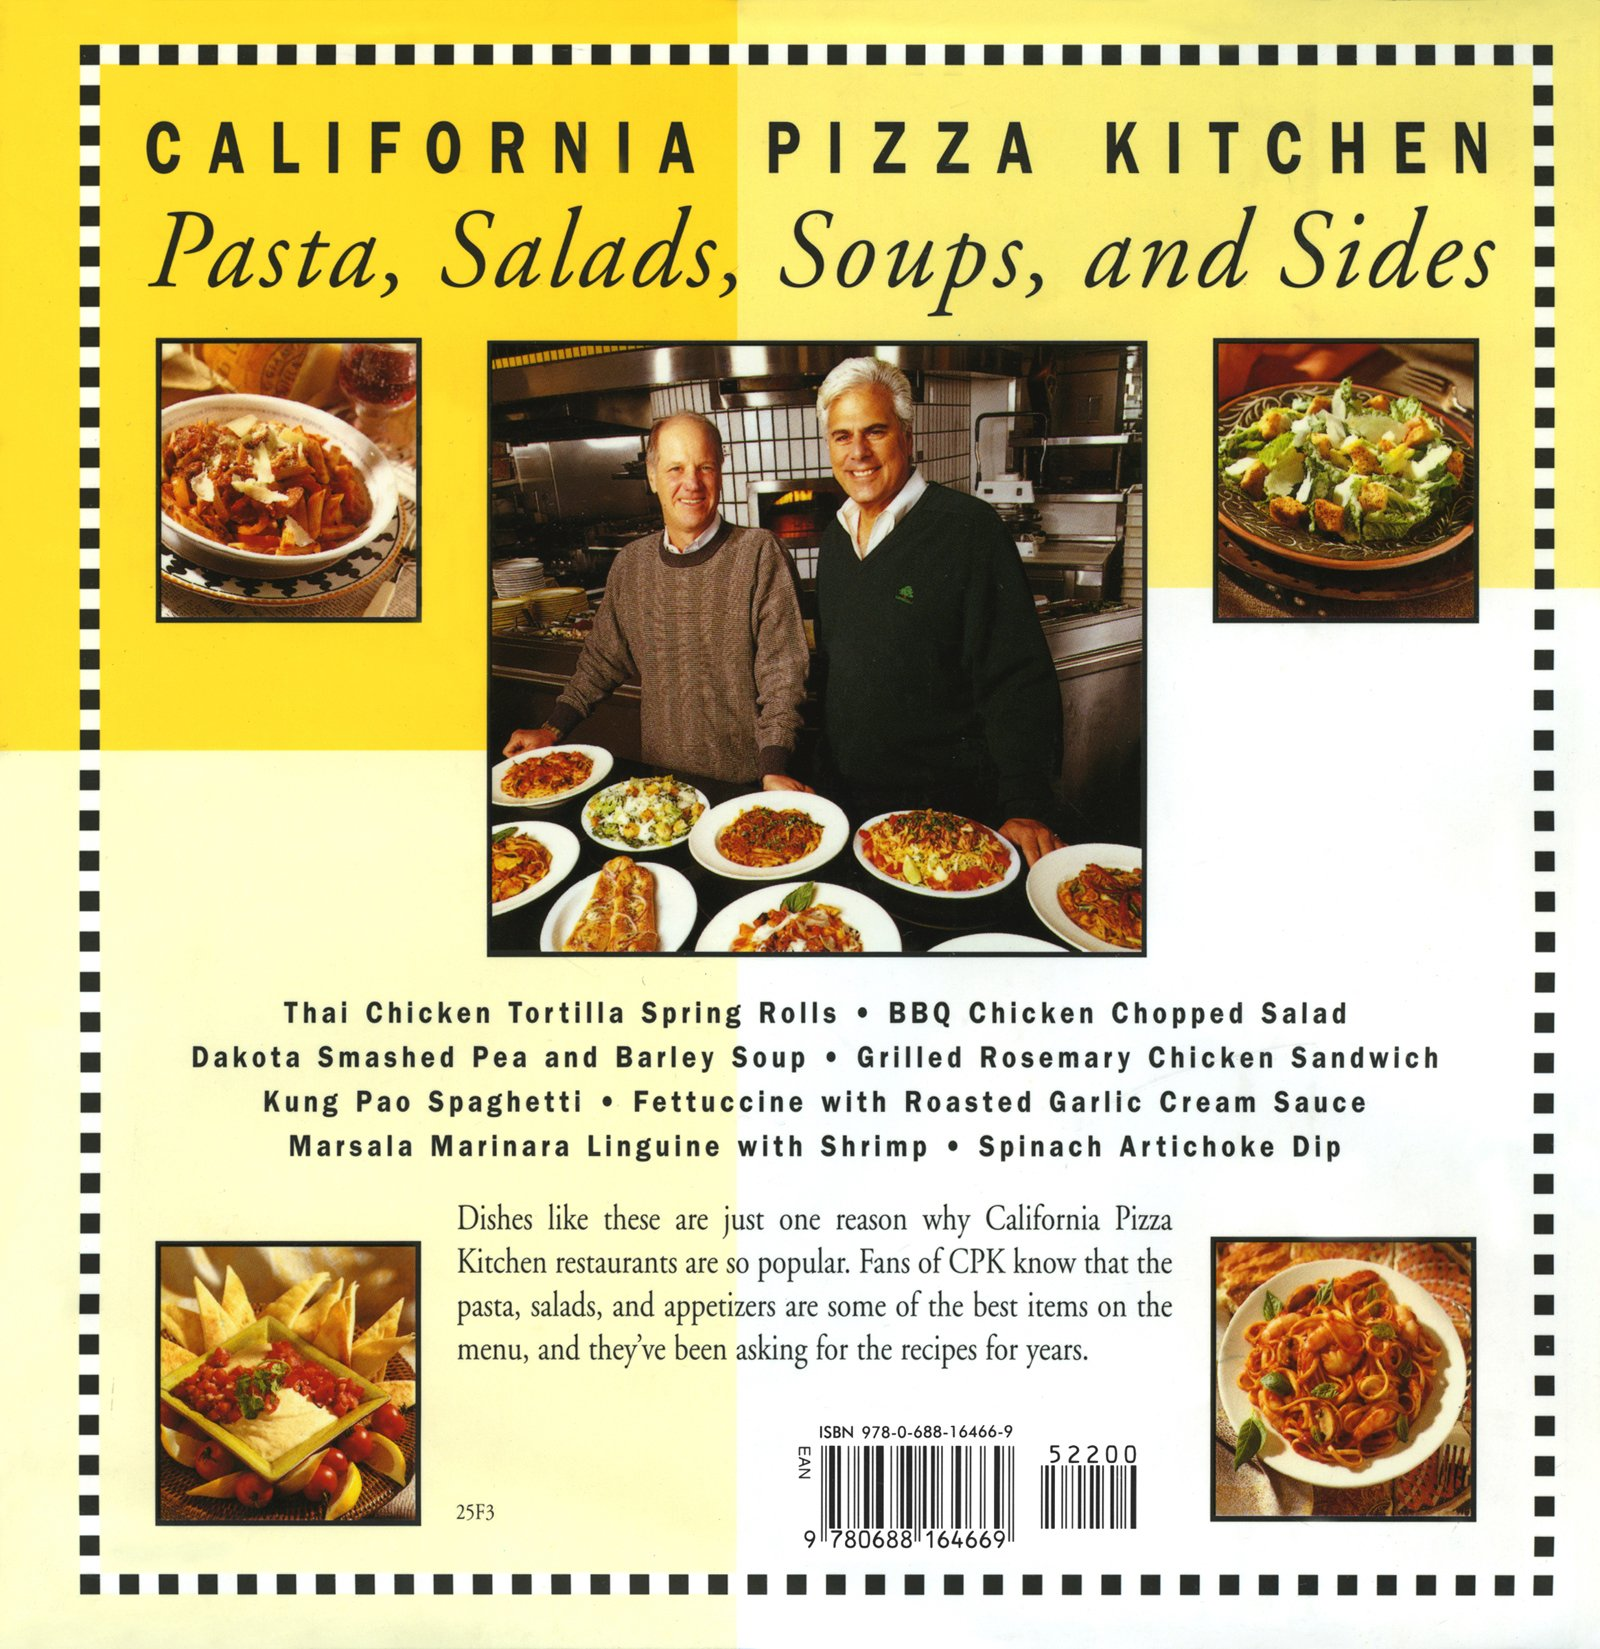 California Pizza Kitchen Pasta, Salads, Soups, And Sides: Larry Flax, Rick  Rosenfield: 9780688164669: Amazon.com: Books